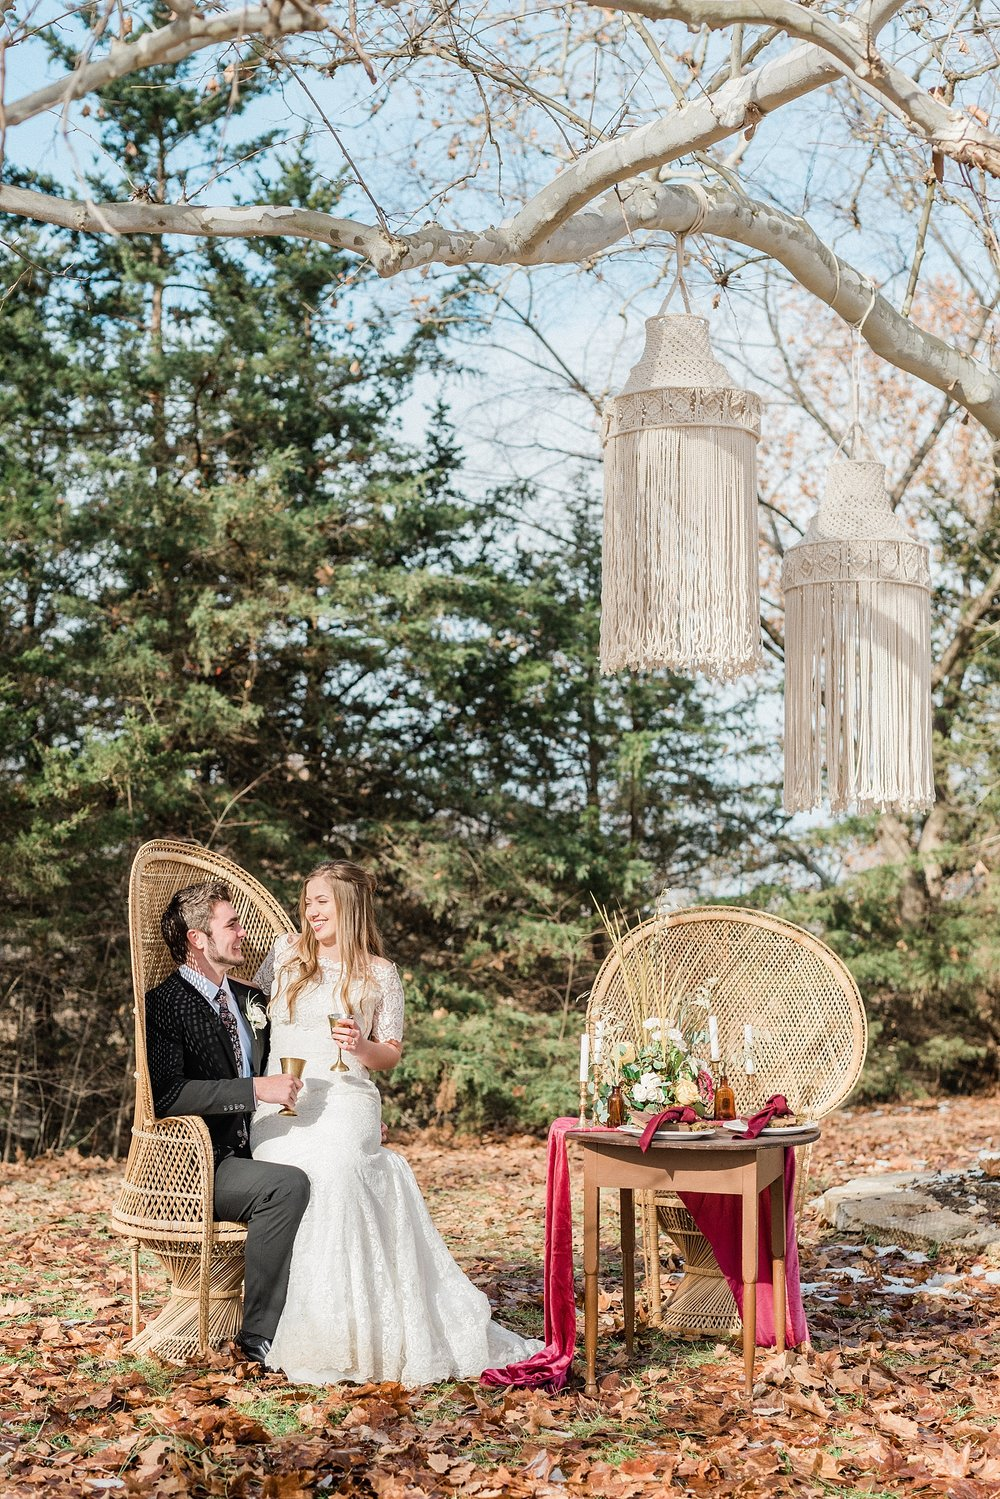 Snowy Winter Wedding at Wildcliff Events Lake With Earthy Jewel Tones and Organic Refined Style by Kelsi Kliethermes Photography Kansas City Missouri Wedding Photographer_0153.jpg